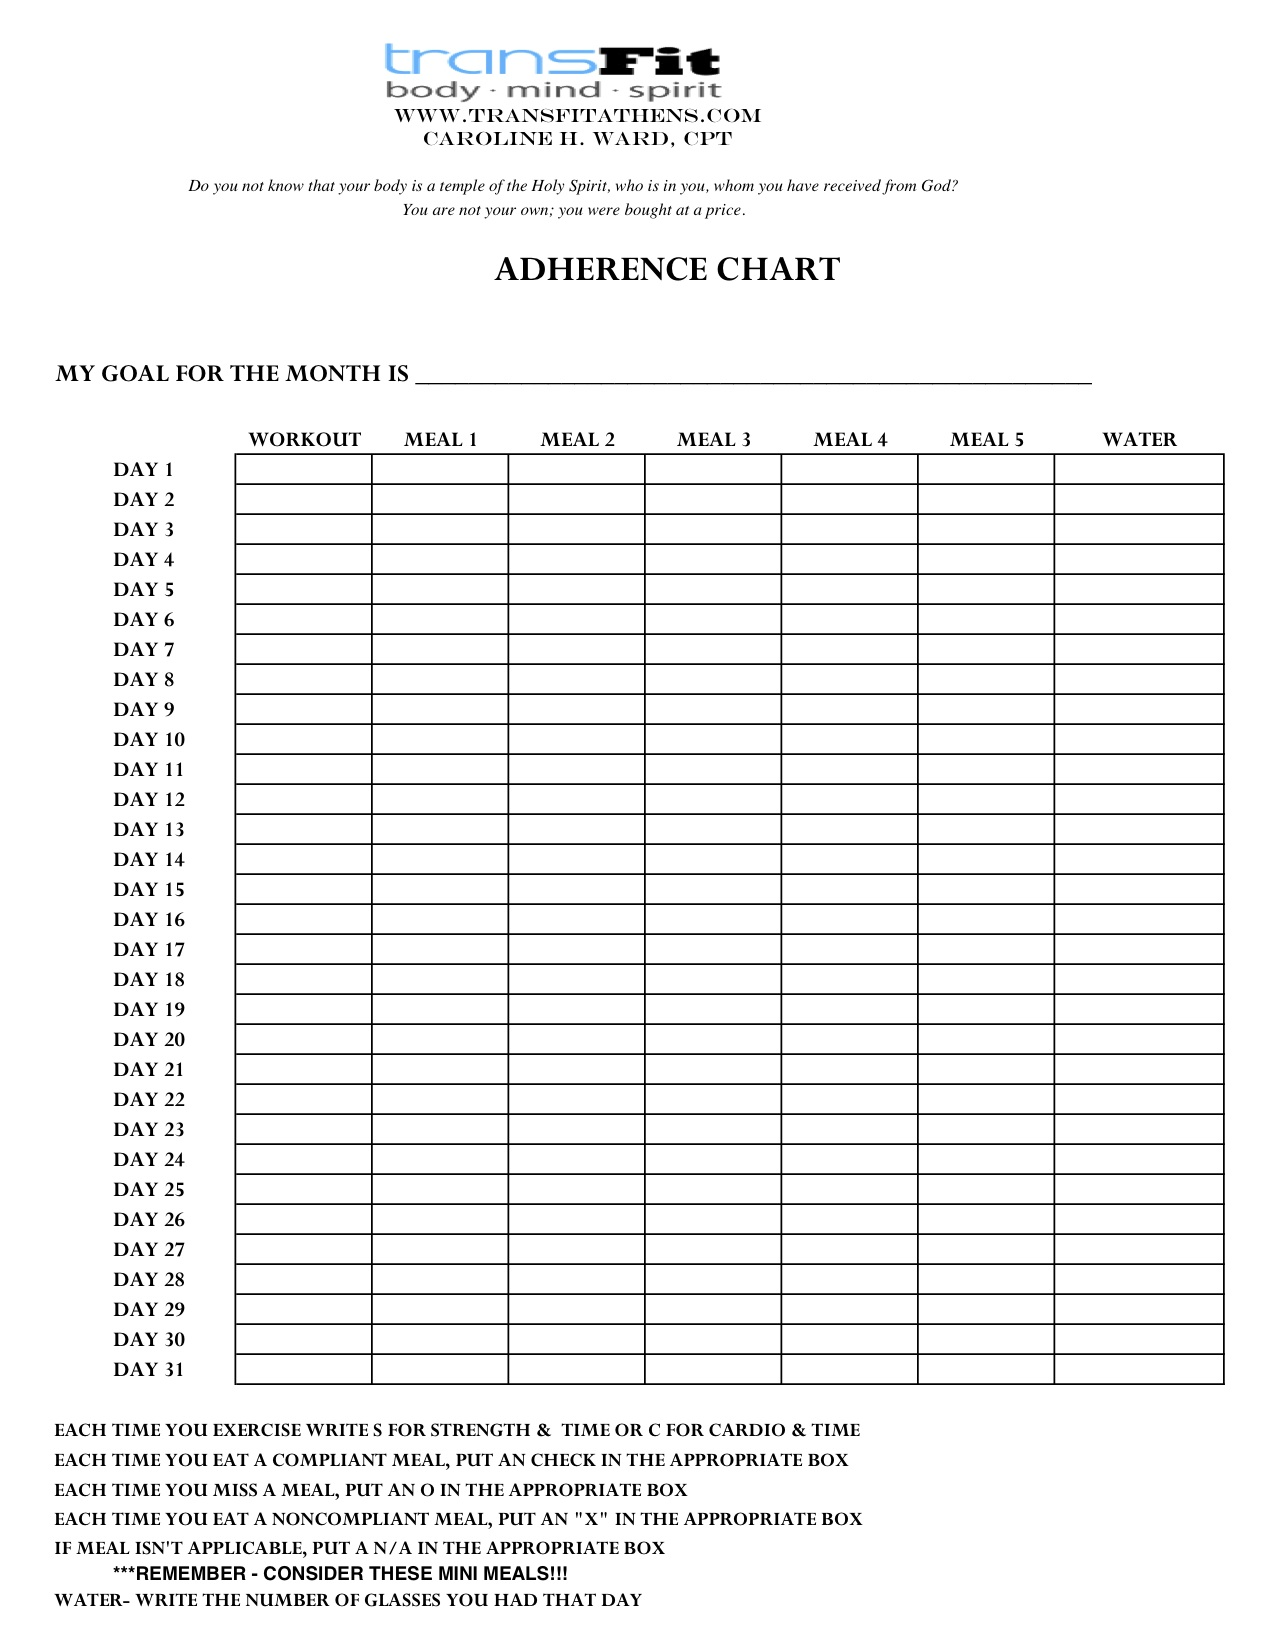 ADHERENCE CHART FOR MARCH 2014